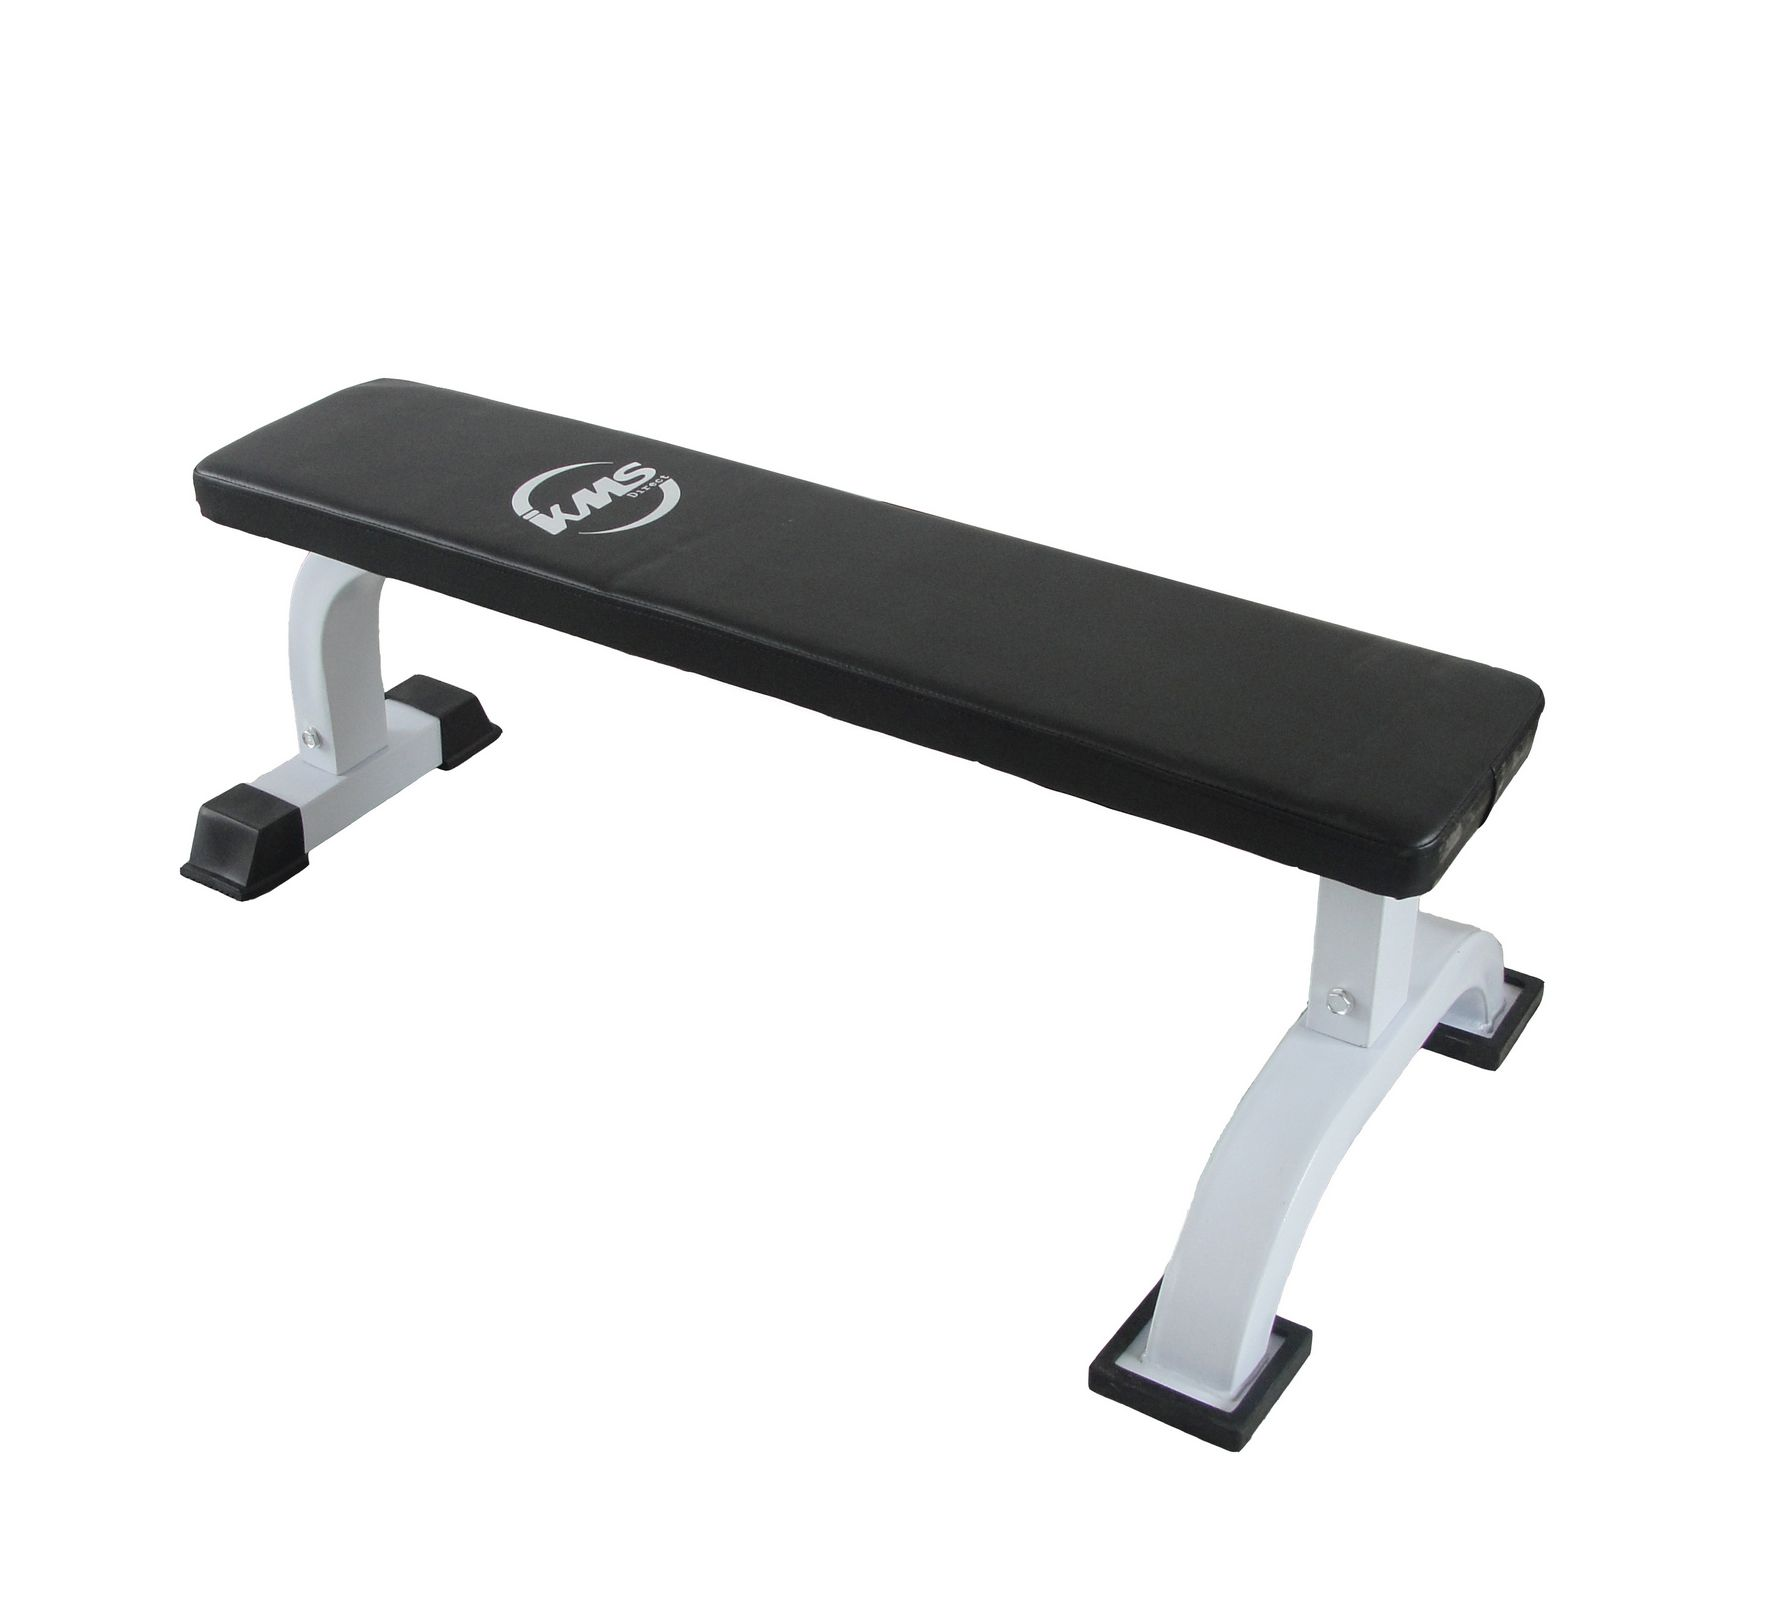 Fitness Flat Bench Weight Lifting Utility Dumbbell Press Abs Home Gym Workout Ebay